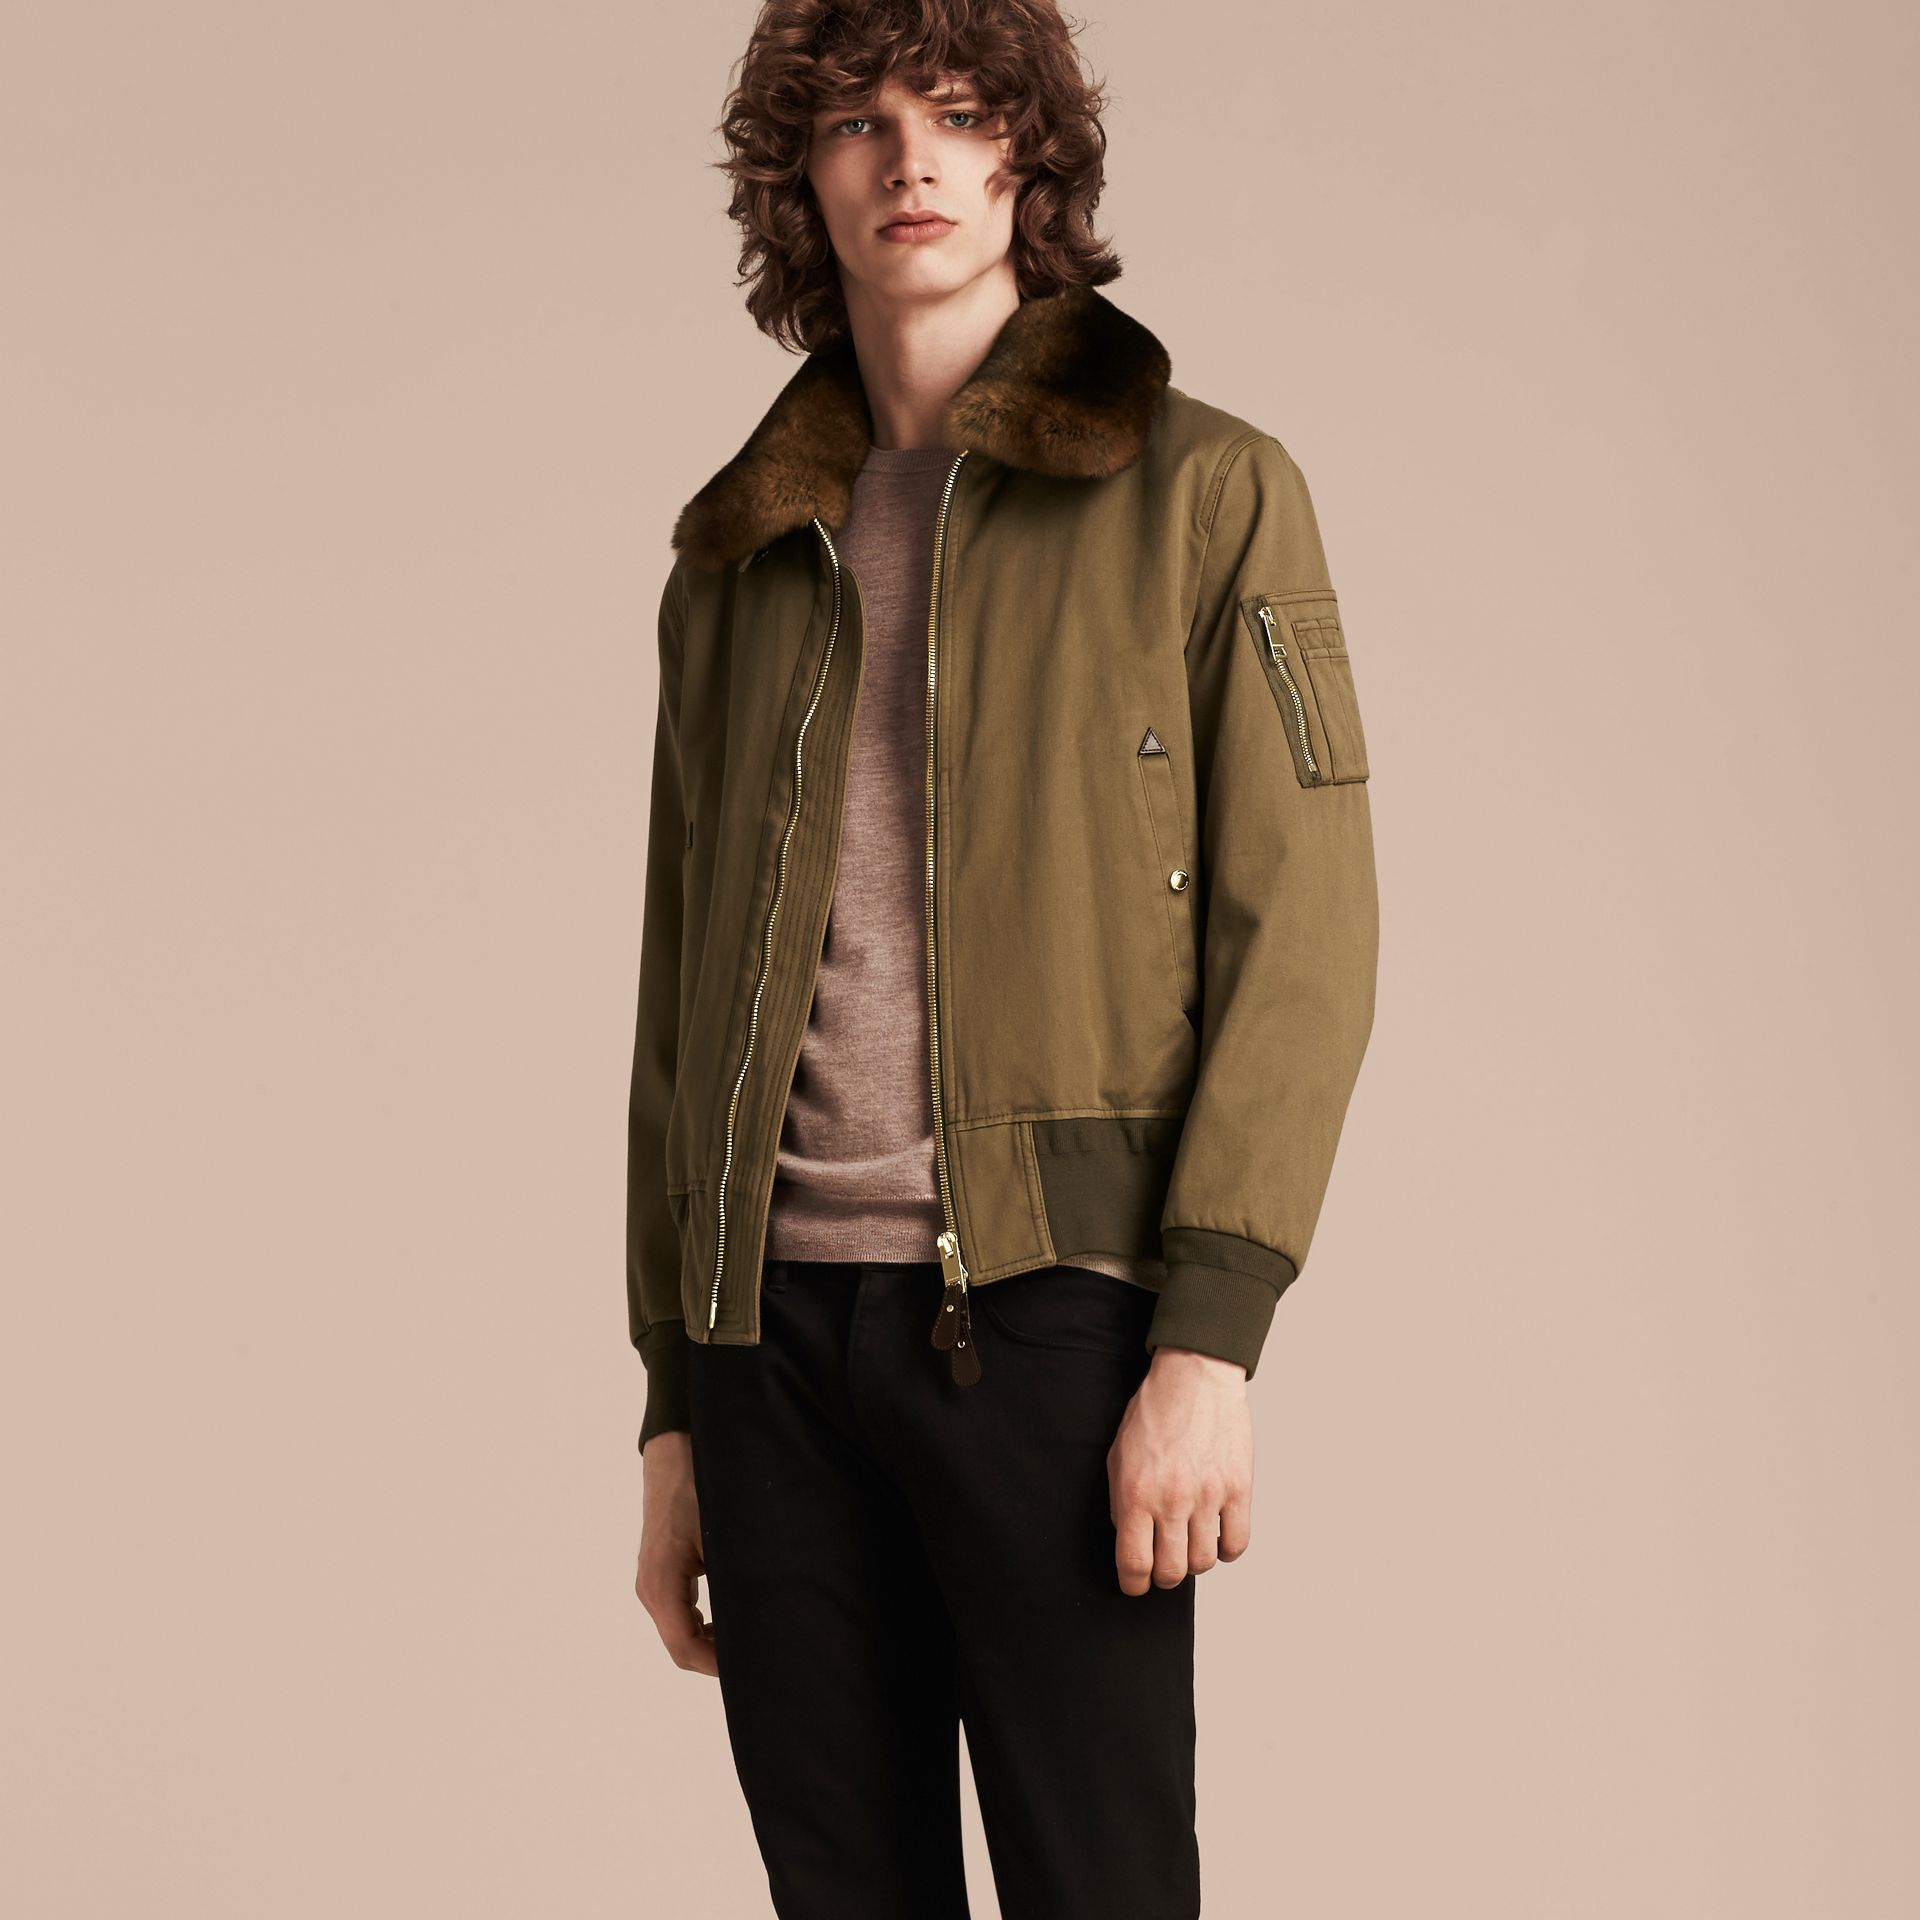 Olive green Cotton Bomber Jacket with Detachable Fur-lined Warmer - gallery image 8